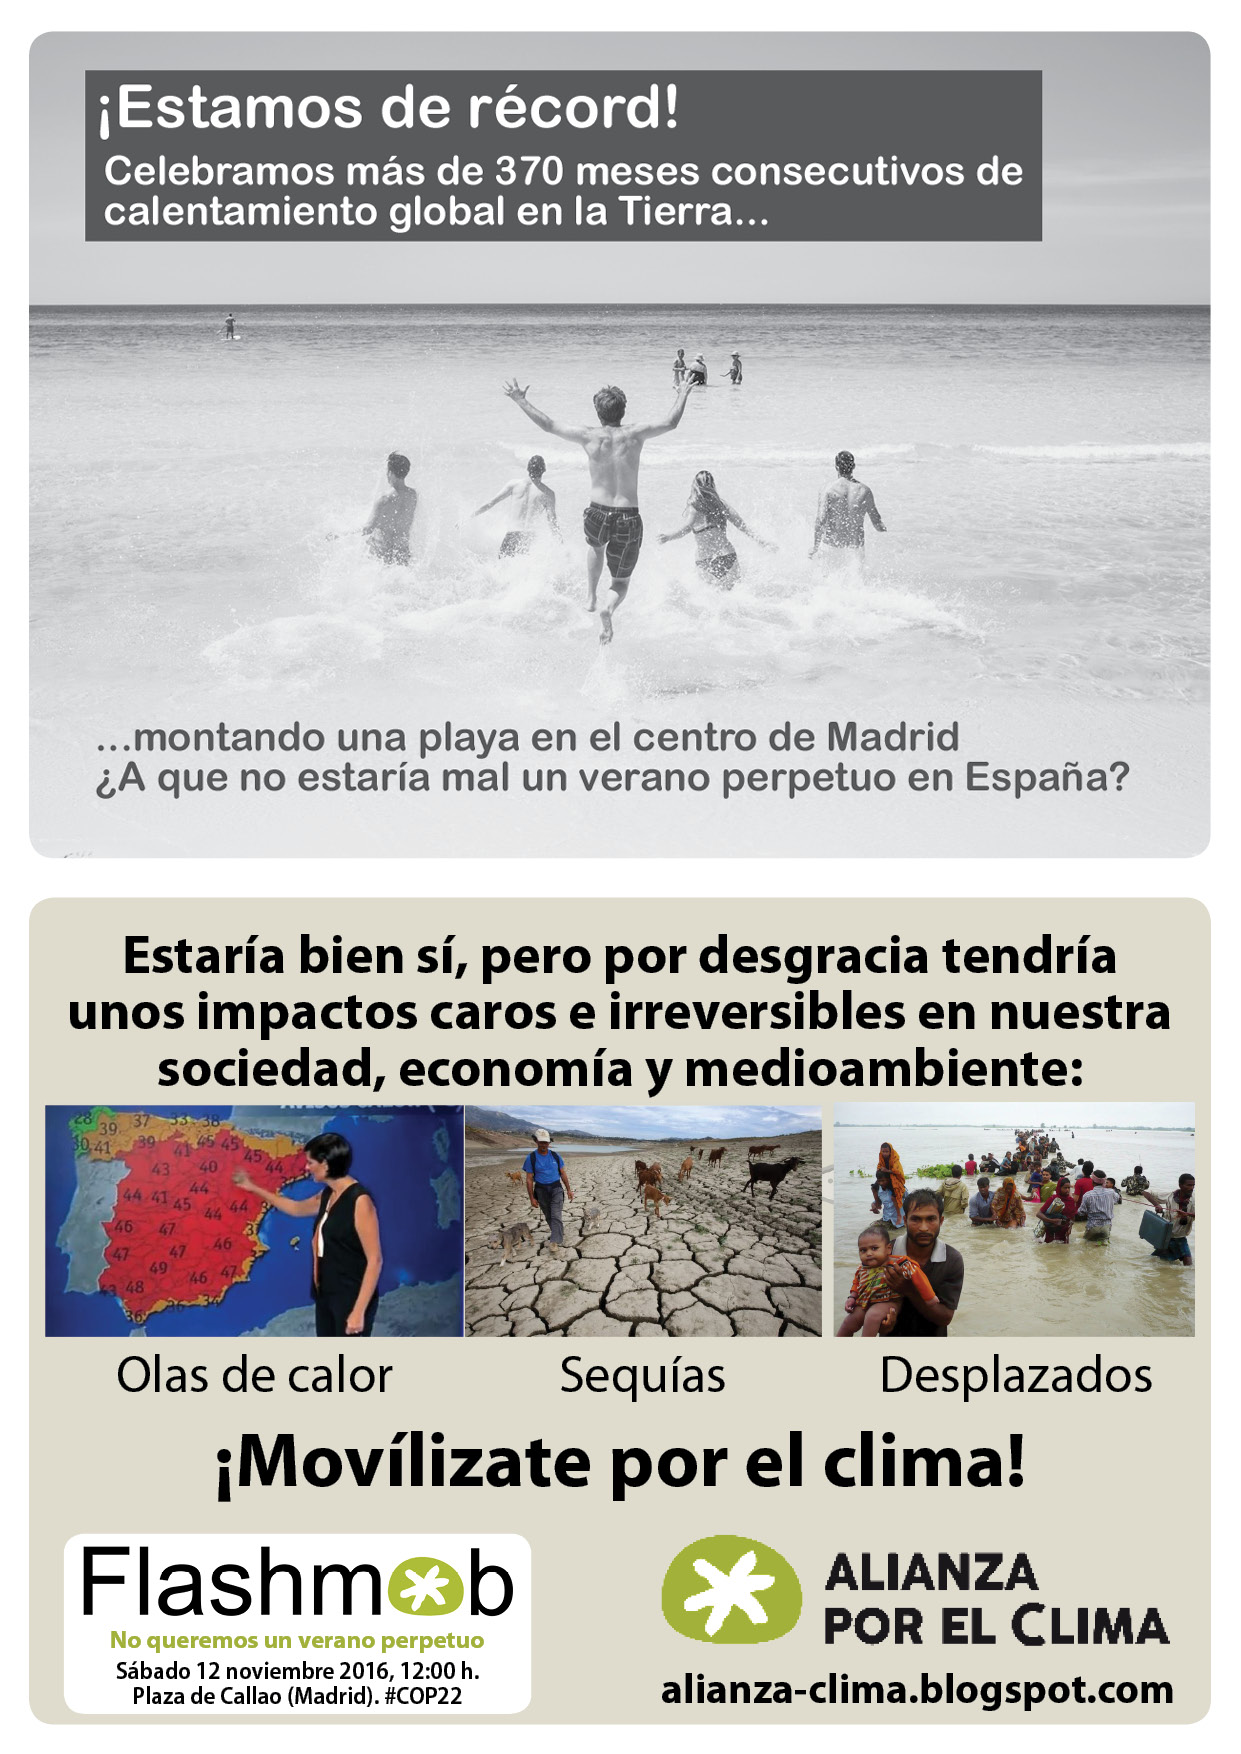 flash mob en Madrid de Alianza por el Clima